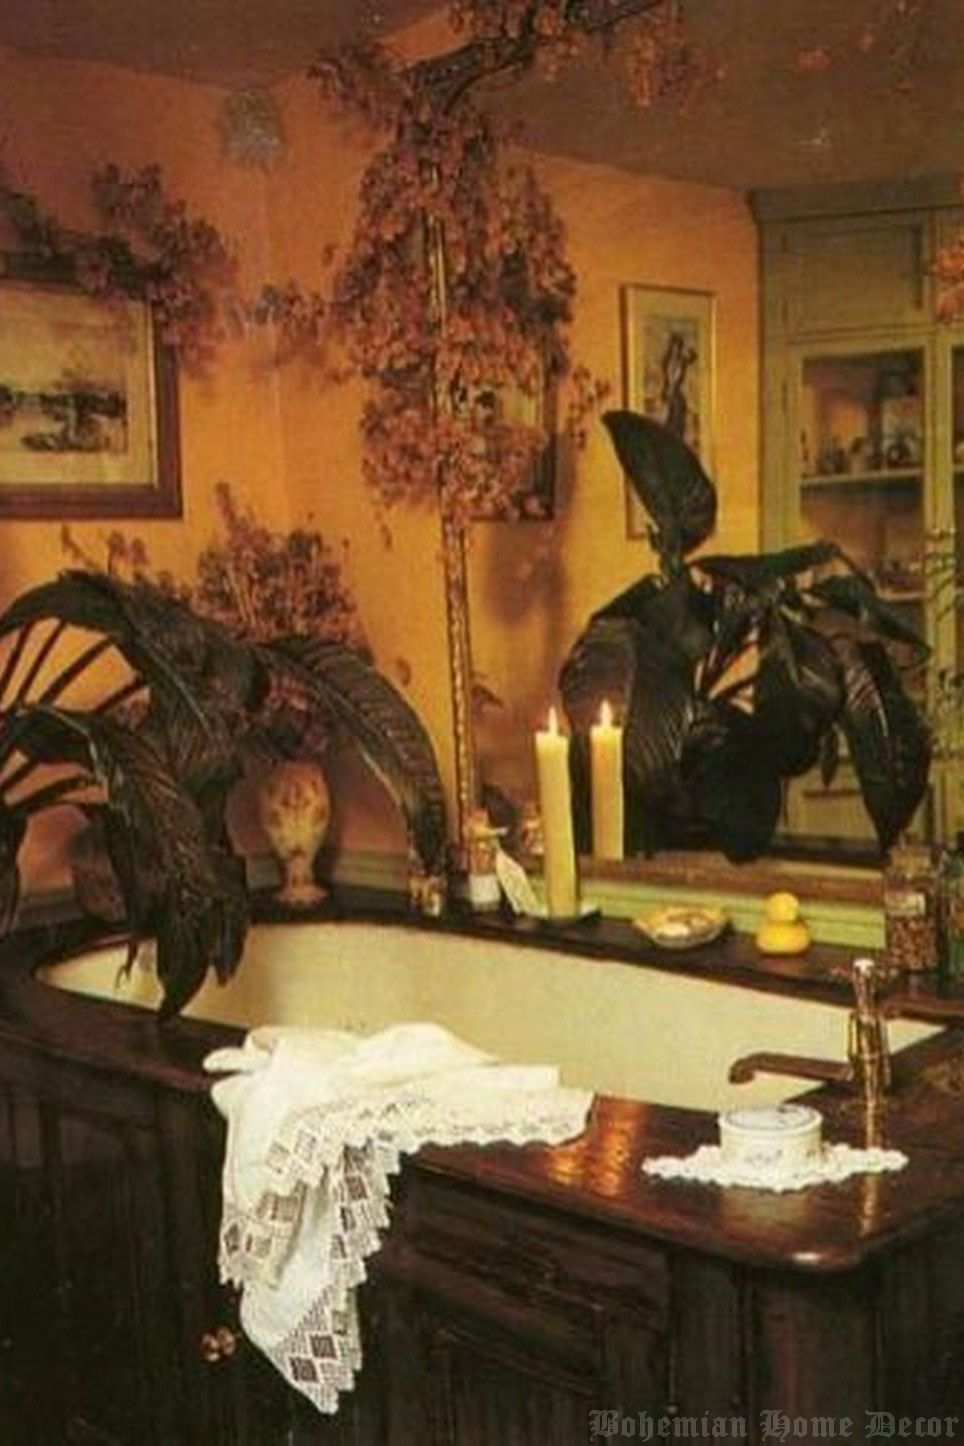 Get Rid of Bohemian Home Decor Once and For All